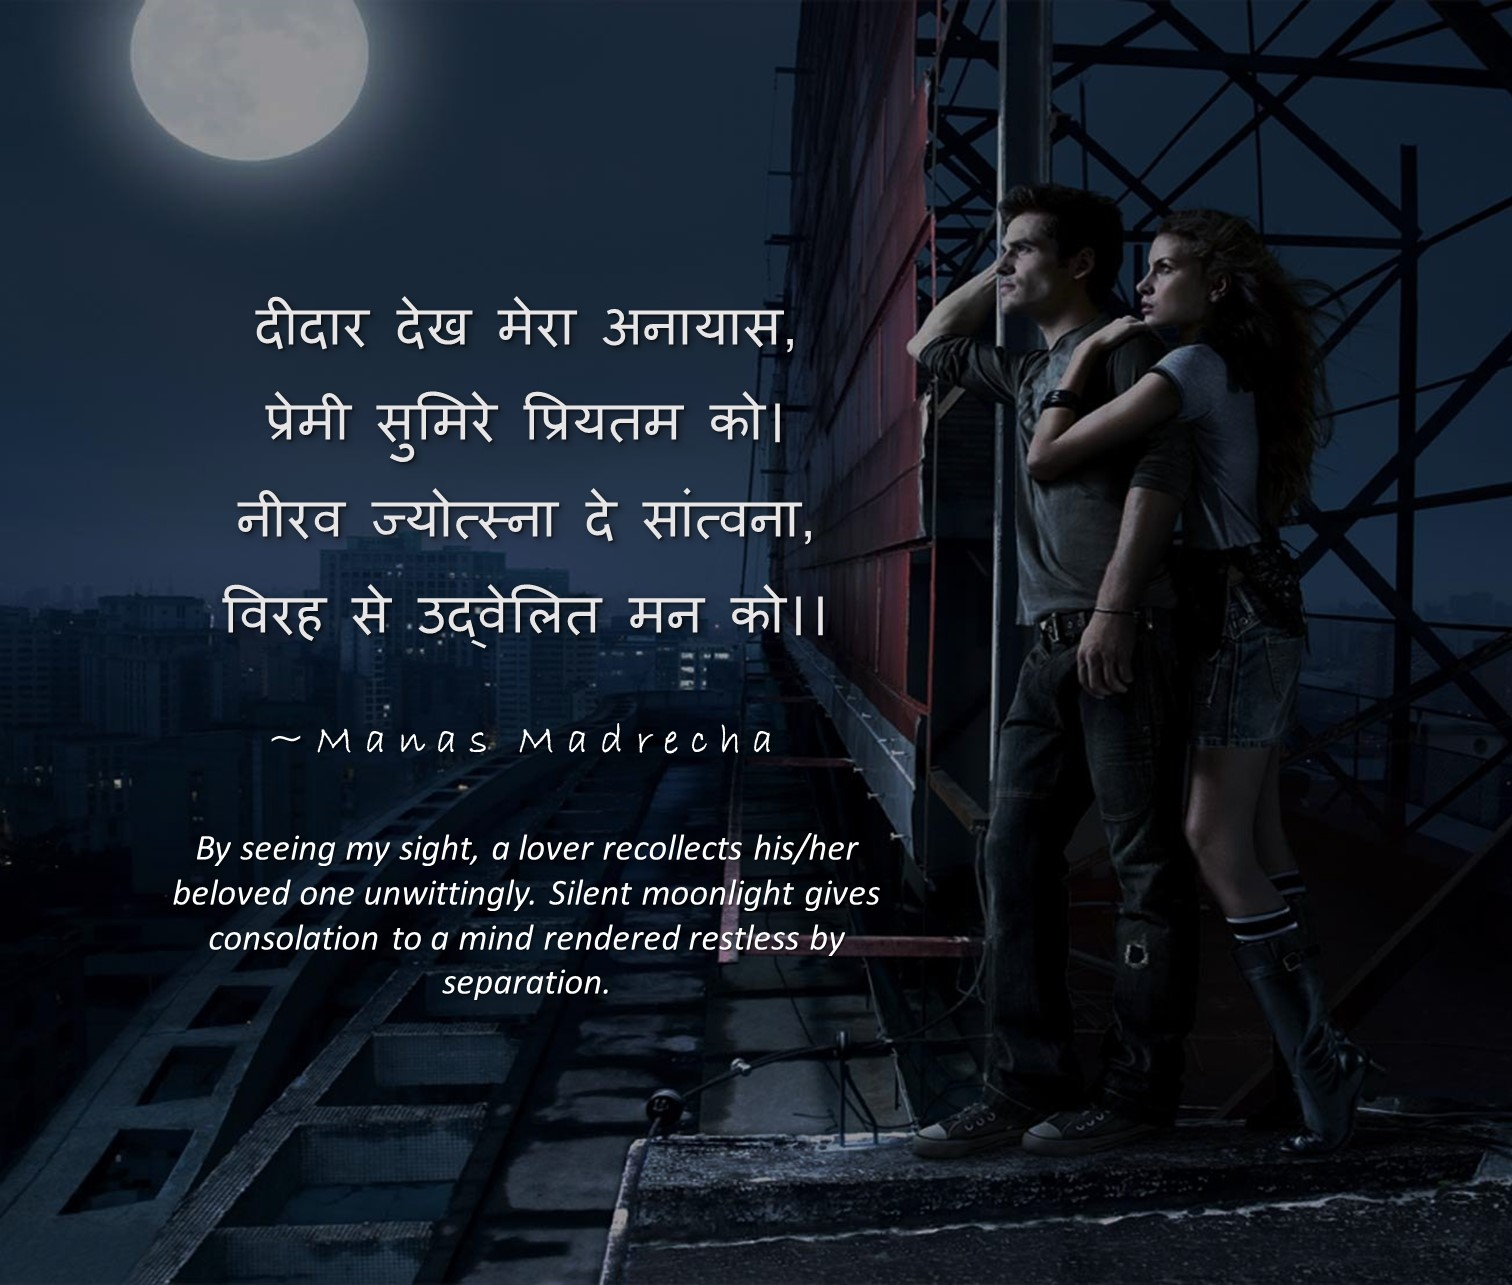 Hindi poem on moon, poem on moon, moon quotes, moon love, moon couple, couple seeing moon, moon shining, moon in night sky, Manas Madrecha, Manas Madrecha poems, Manas Madrecha quotes, Manas Madrecha stories, Manas Madrecha blog, simplifying universe, girl seeing moon, boy seeing moon, couple looking at moon, love quotes on moon